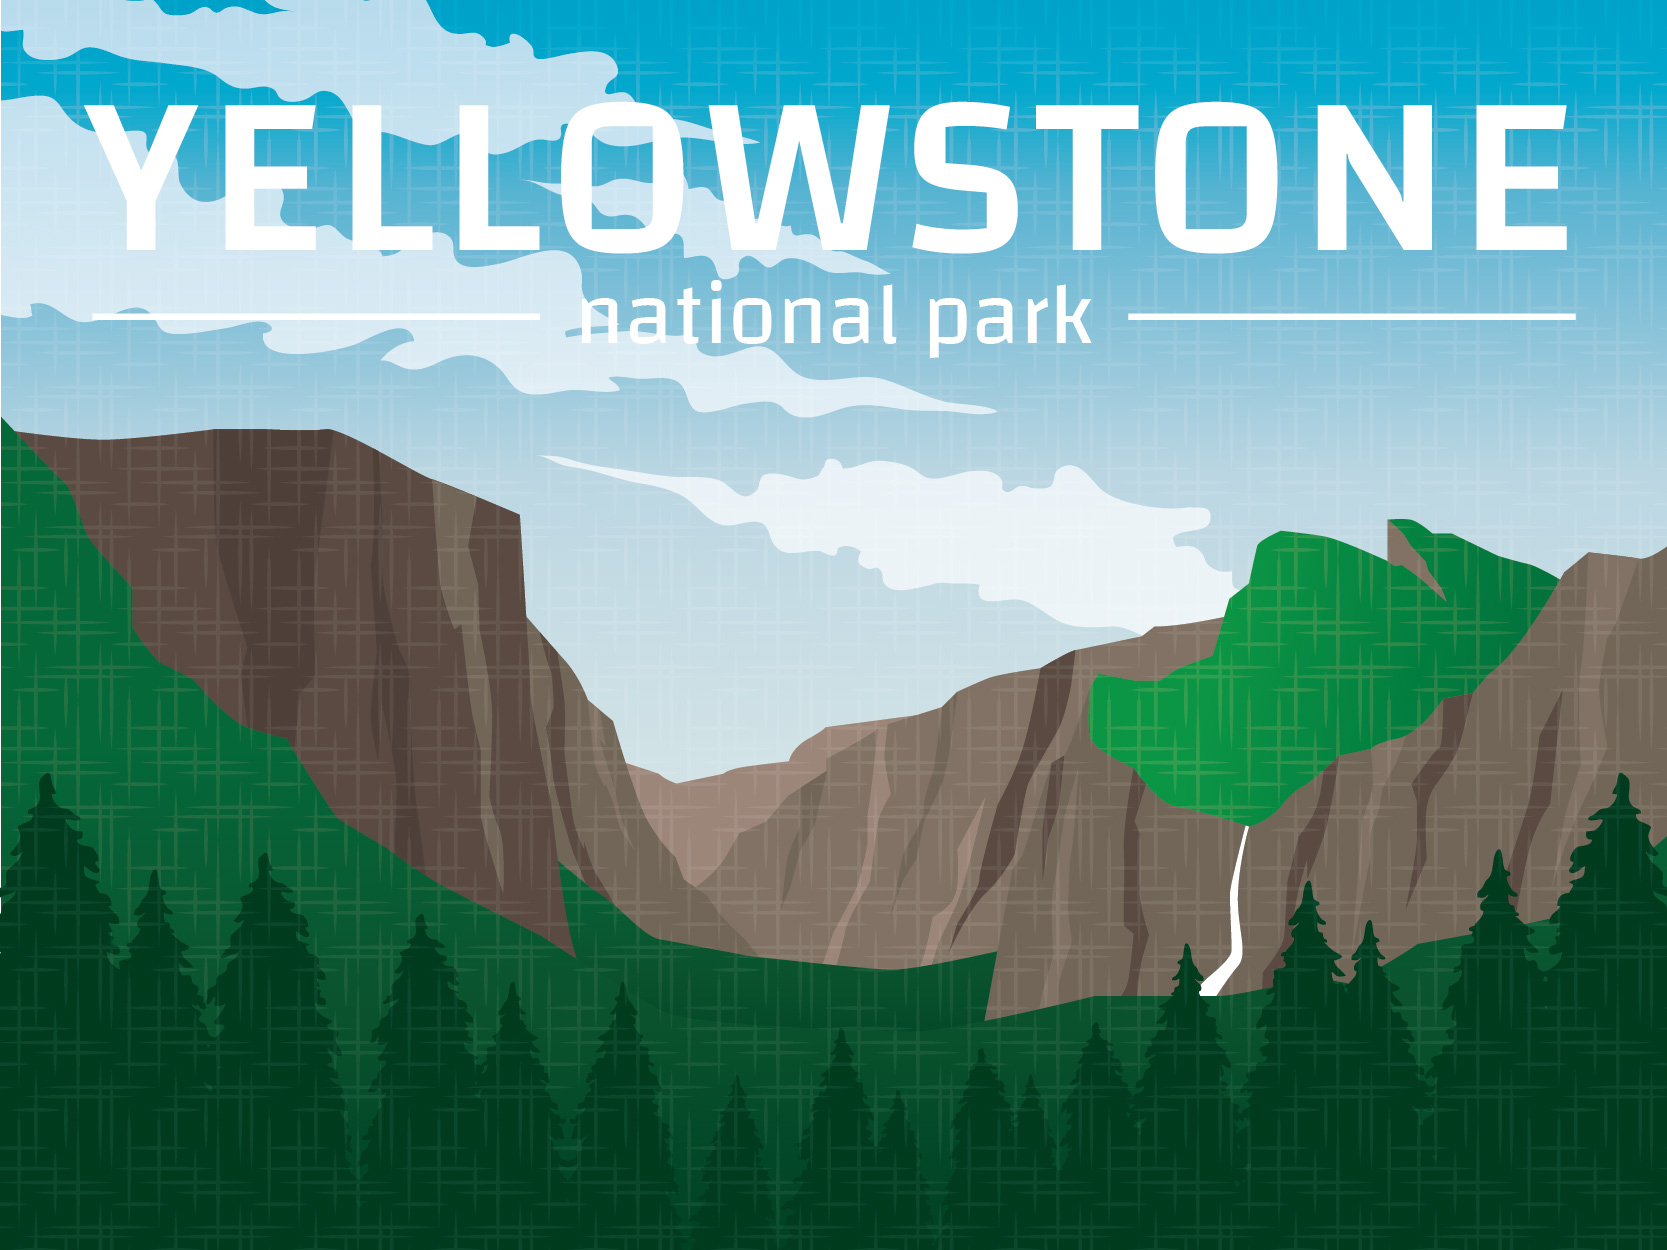 Yellowstone mountain clipart silhouette clip free library Yellowstone National Park Free Vector Art - (3 Free Downloads) clip free library